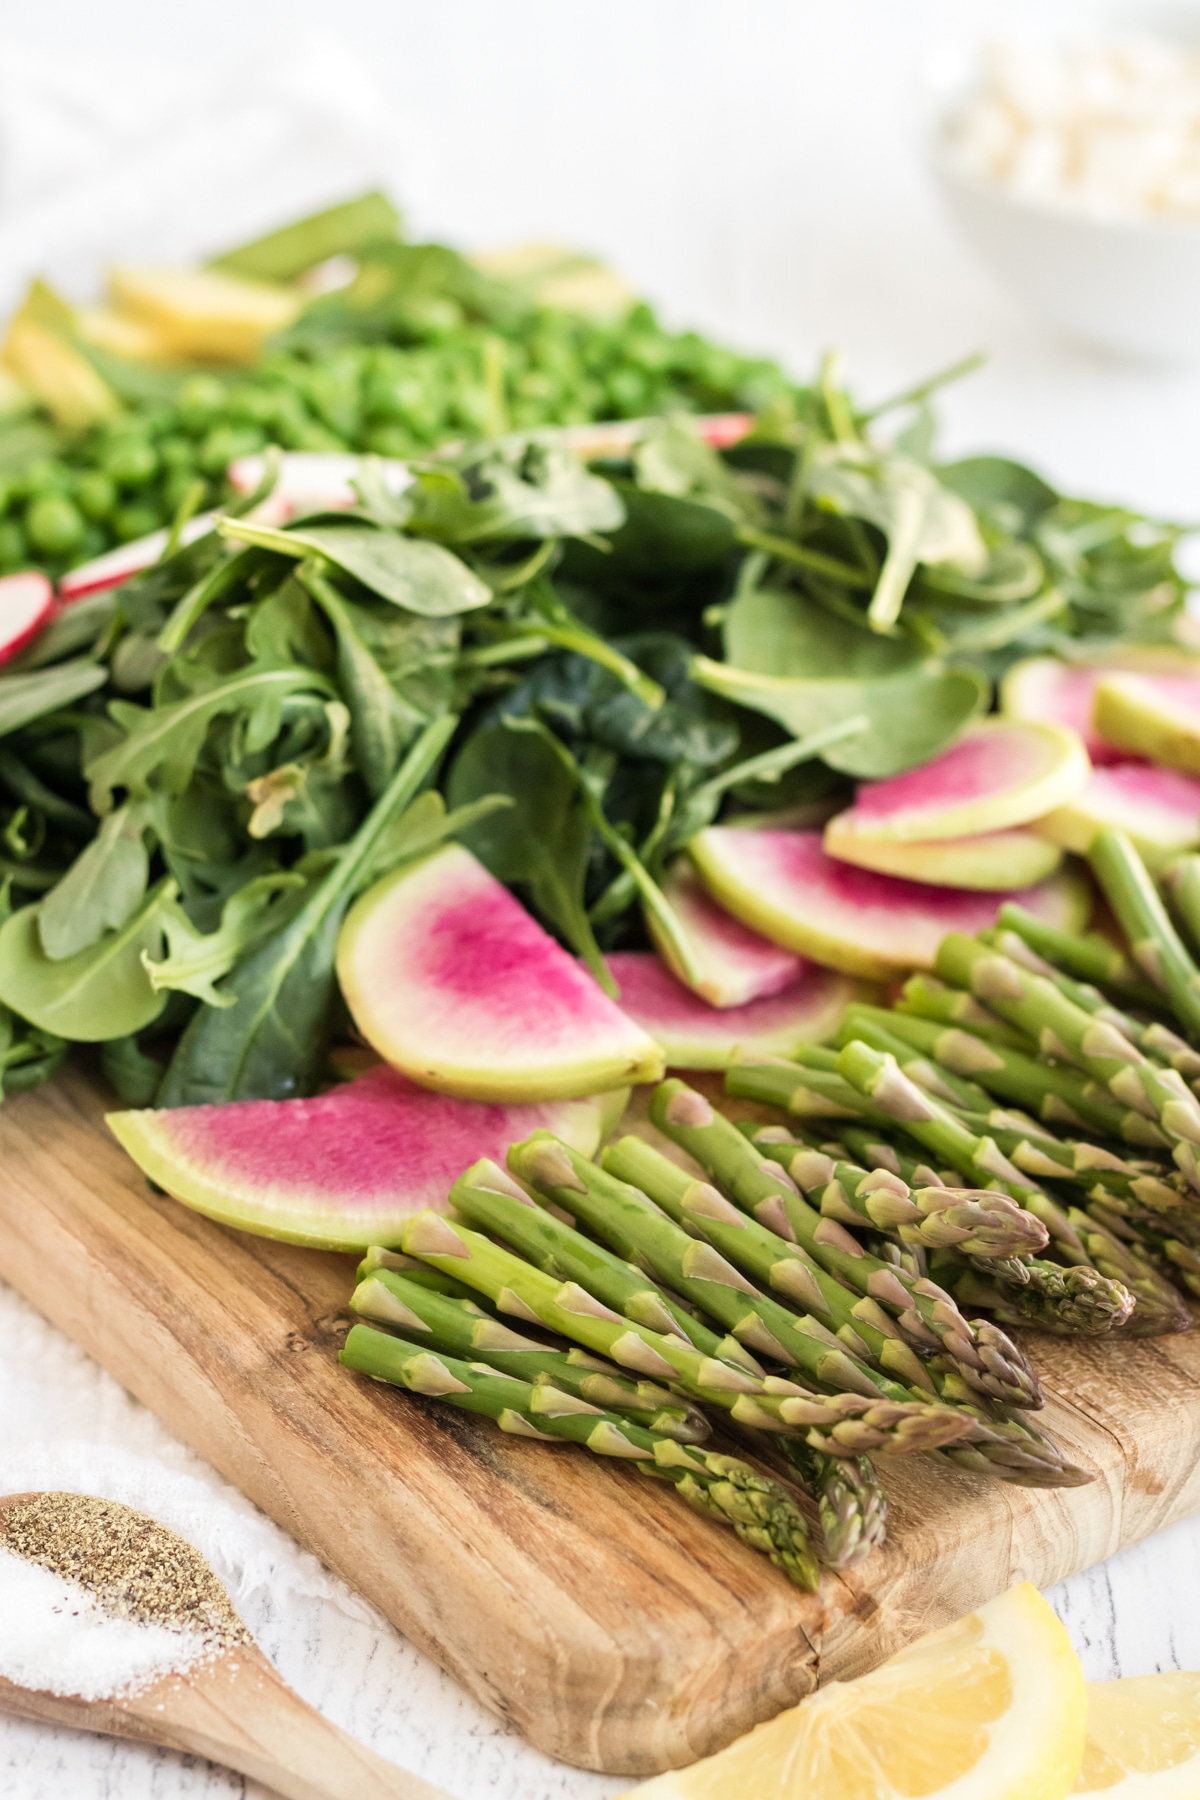 ingredients for spring salad including asparagus and radish on a wooden cutting board.